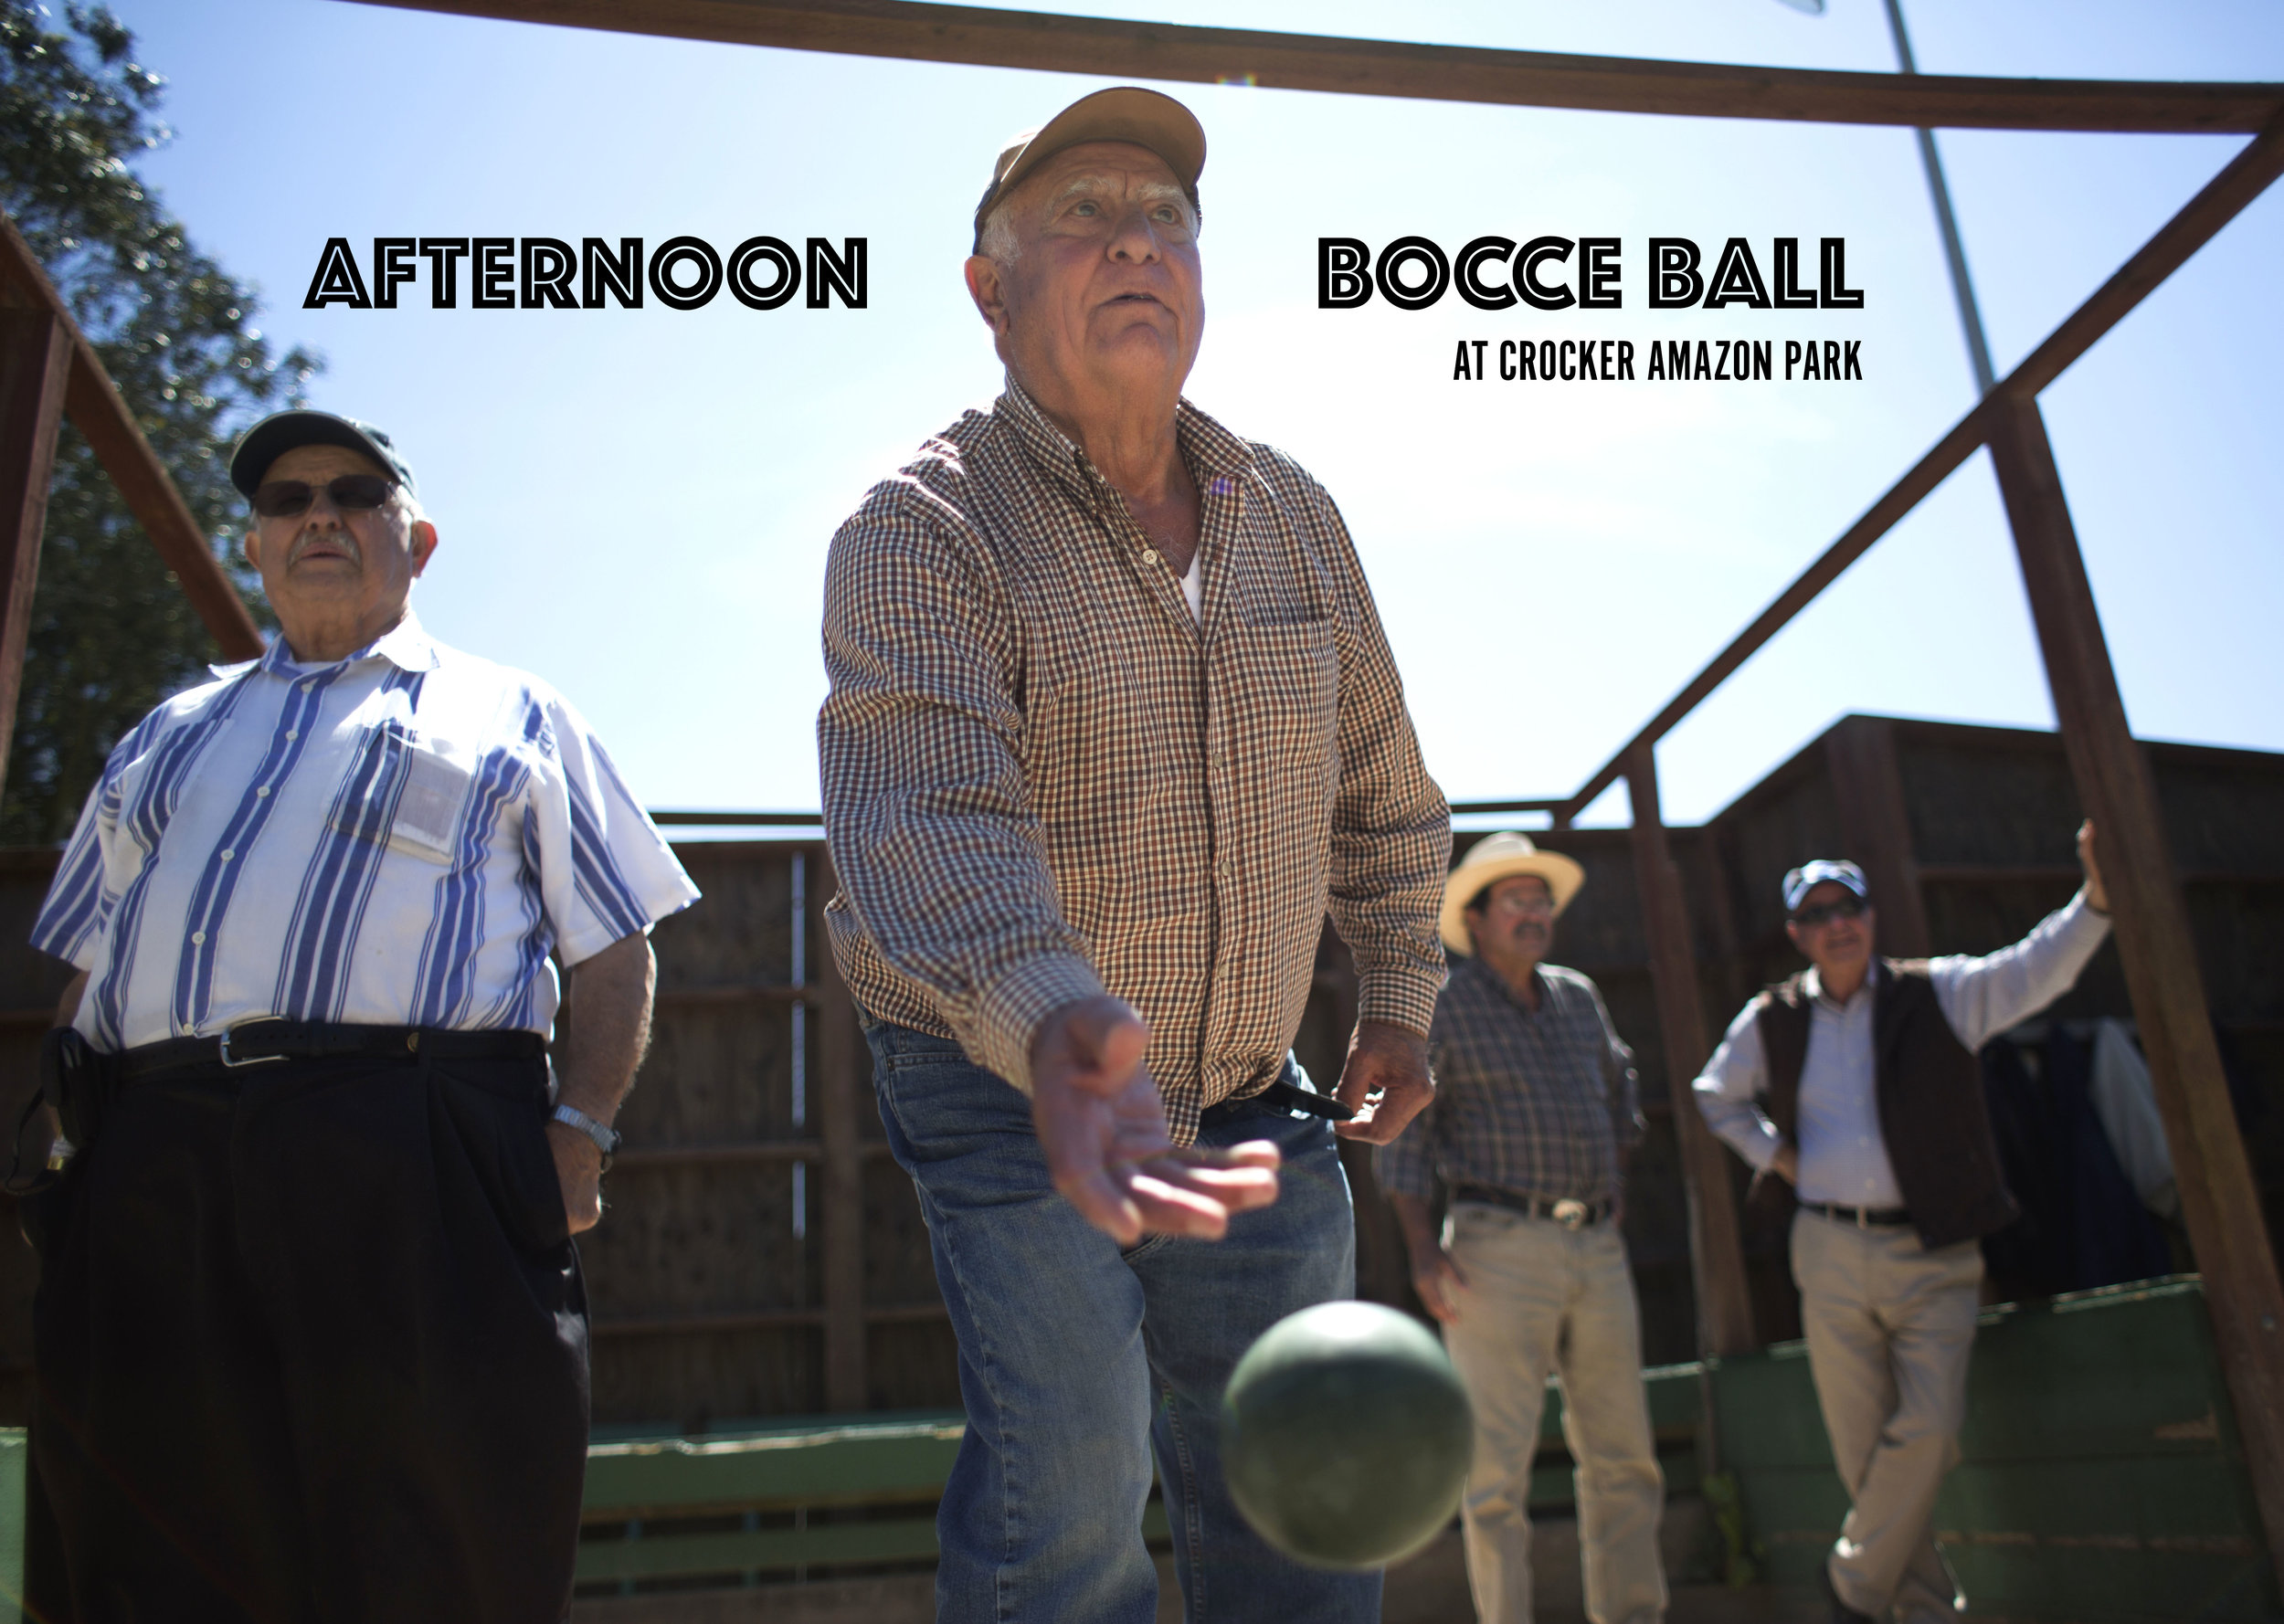 Afternoon Bocce at Crocker Amazon | Ingleside-Excelsior Light